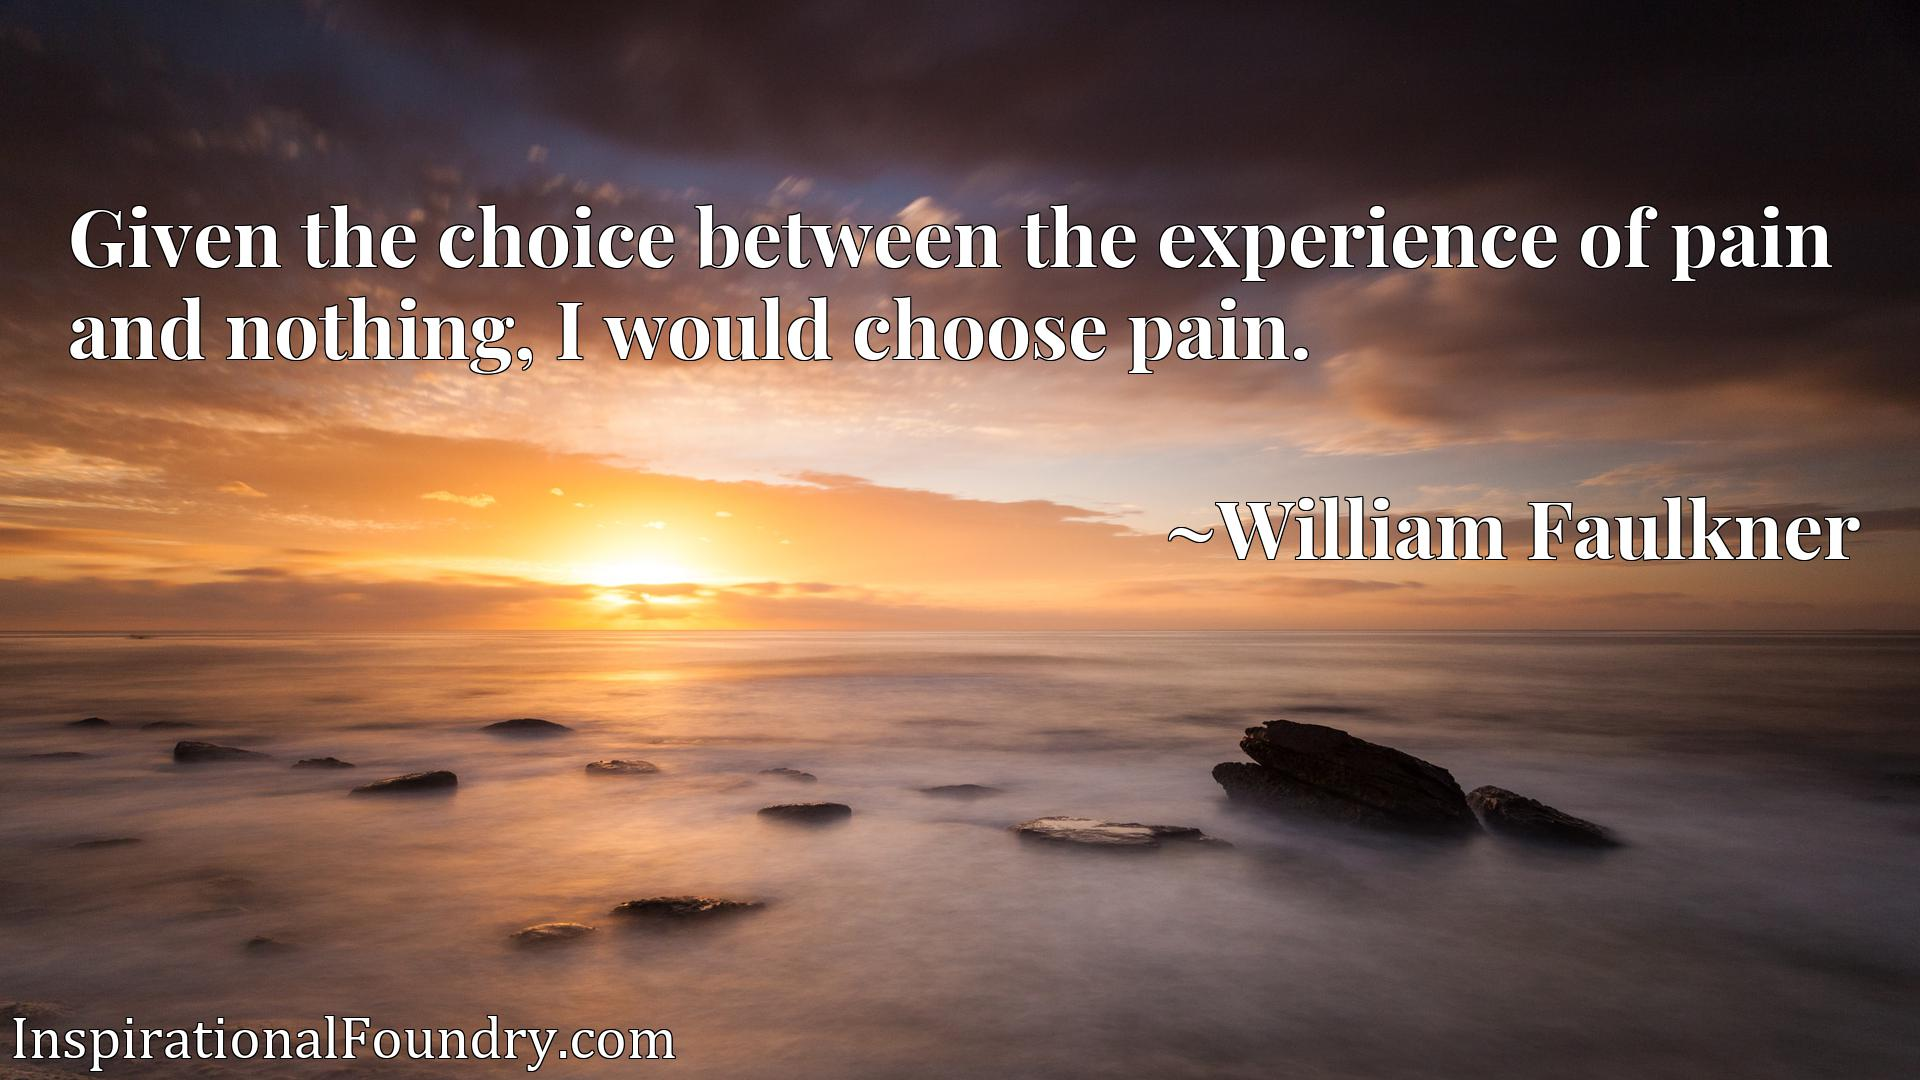 Given the choice between the experience of pain and nothing, I would choose pain.